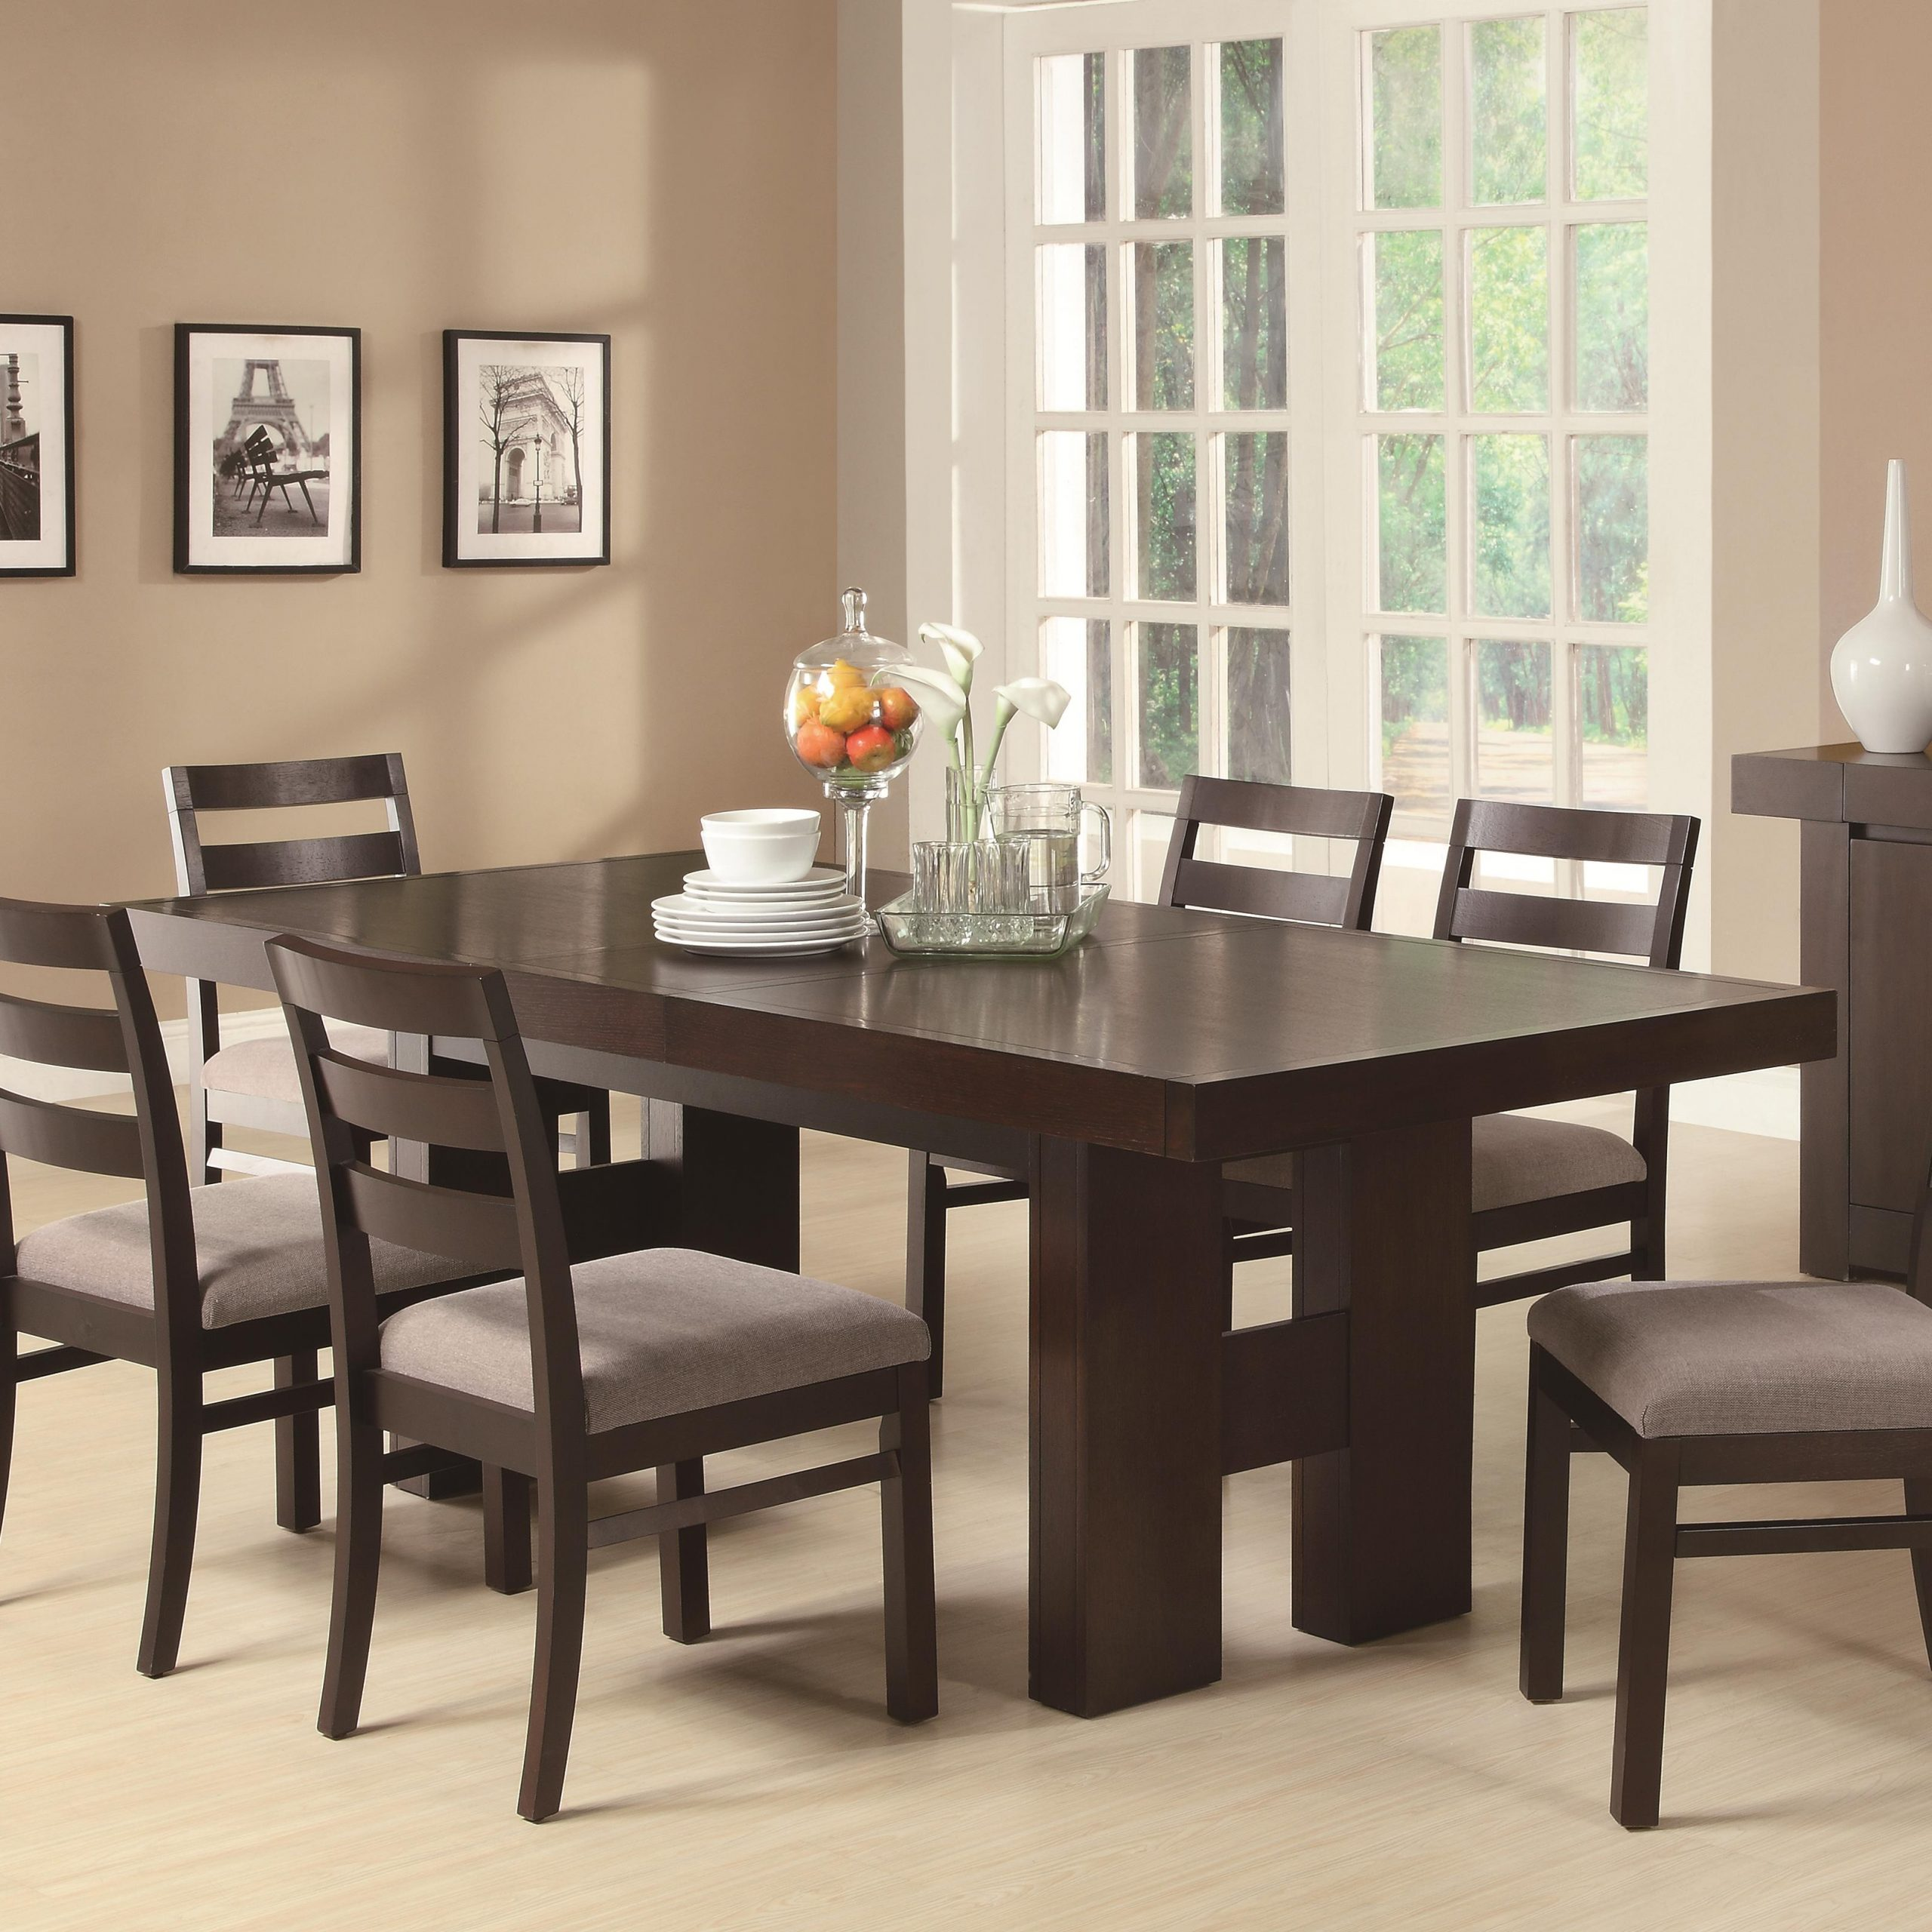 The Classy For Current Cappuccino Finish Wood Classic Casual Dining Tables (View 20 of 25)